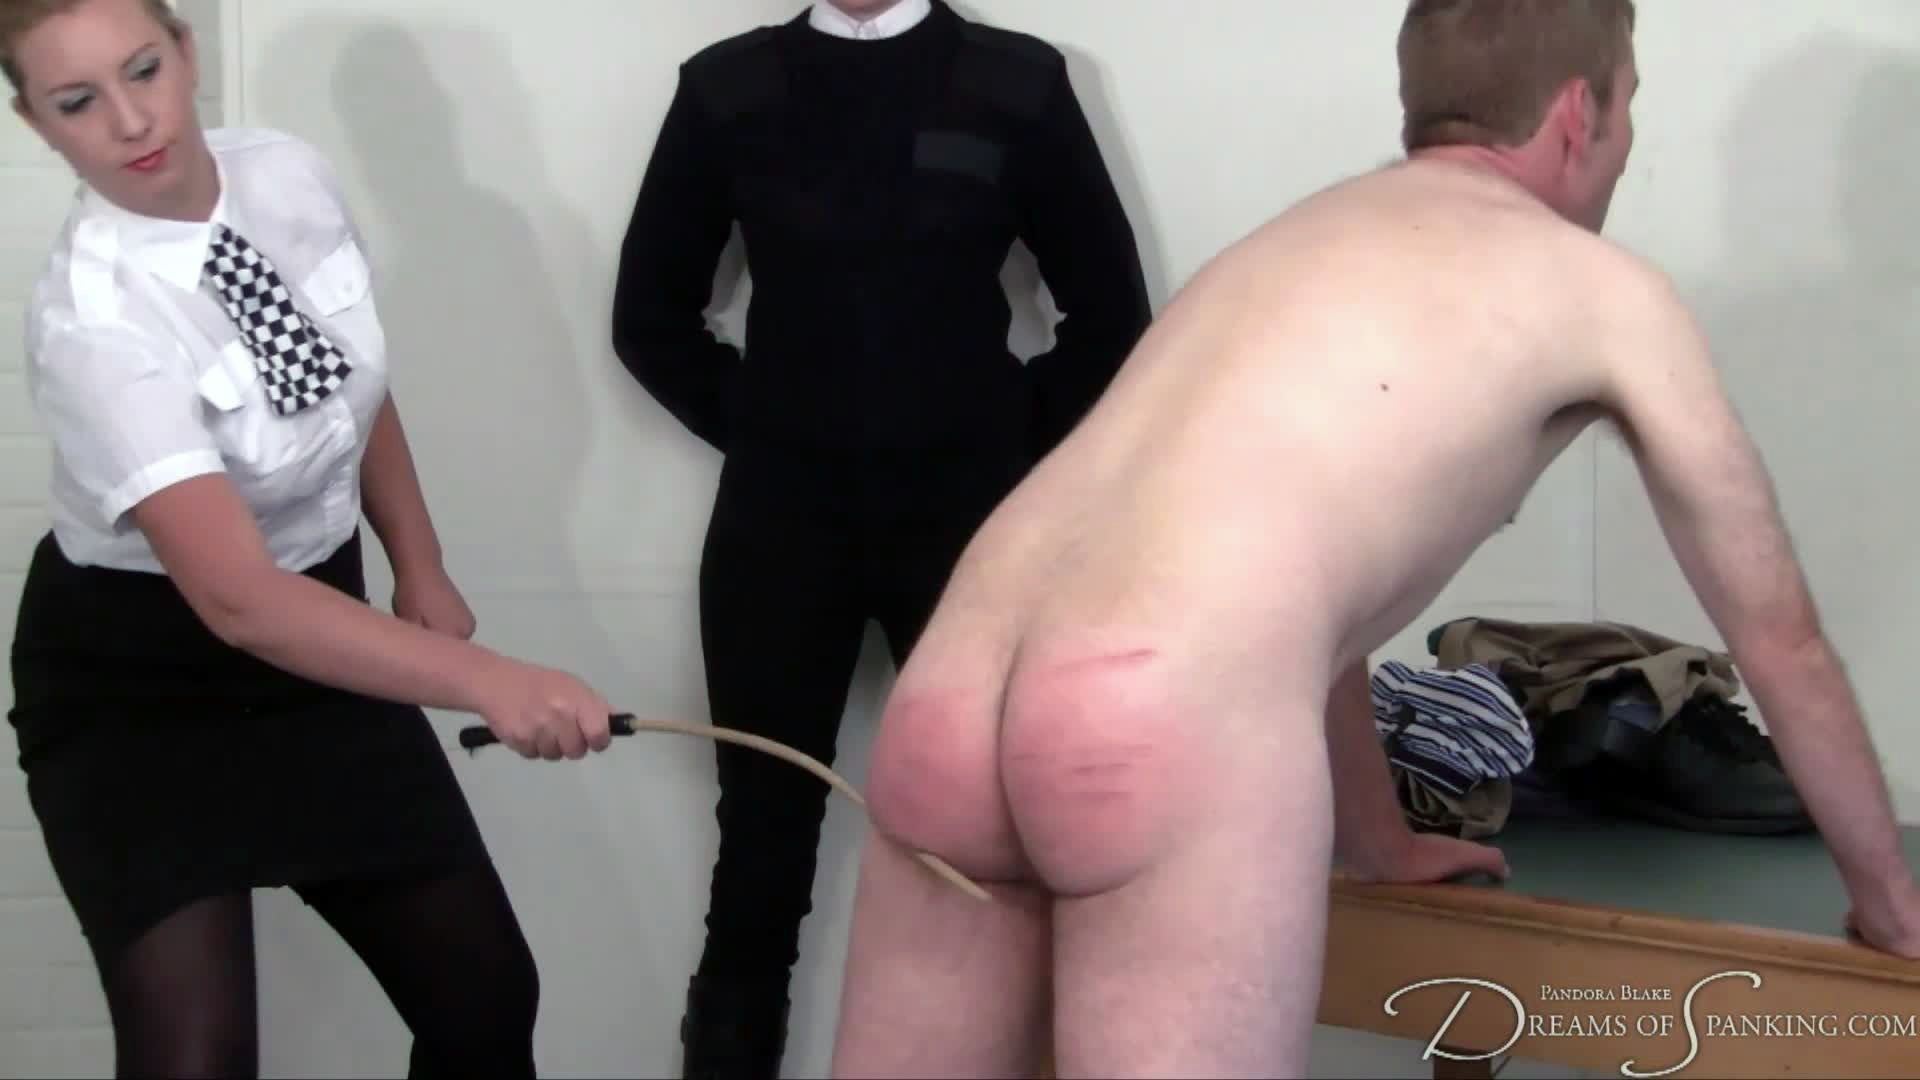 Spank camp preview